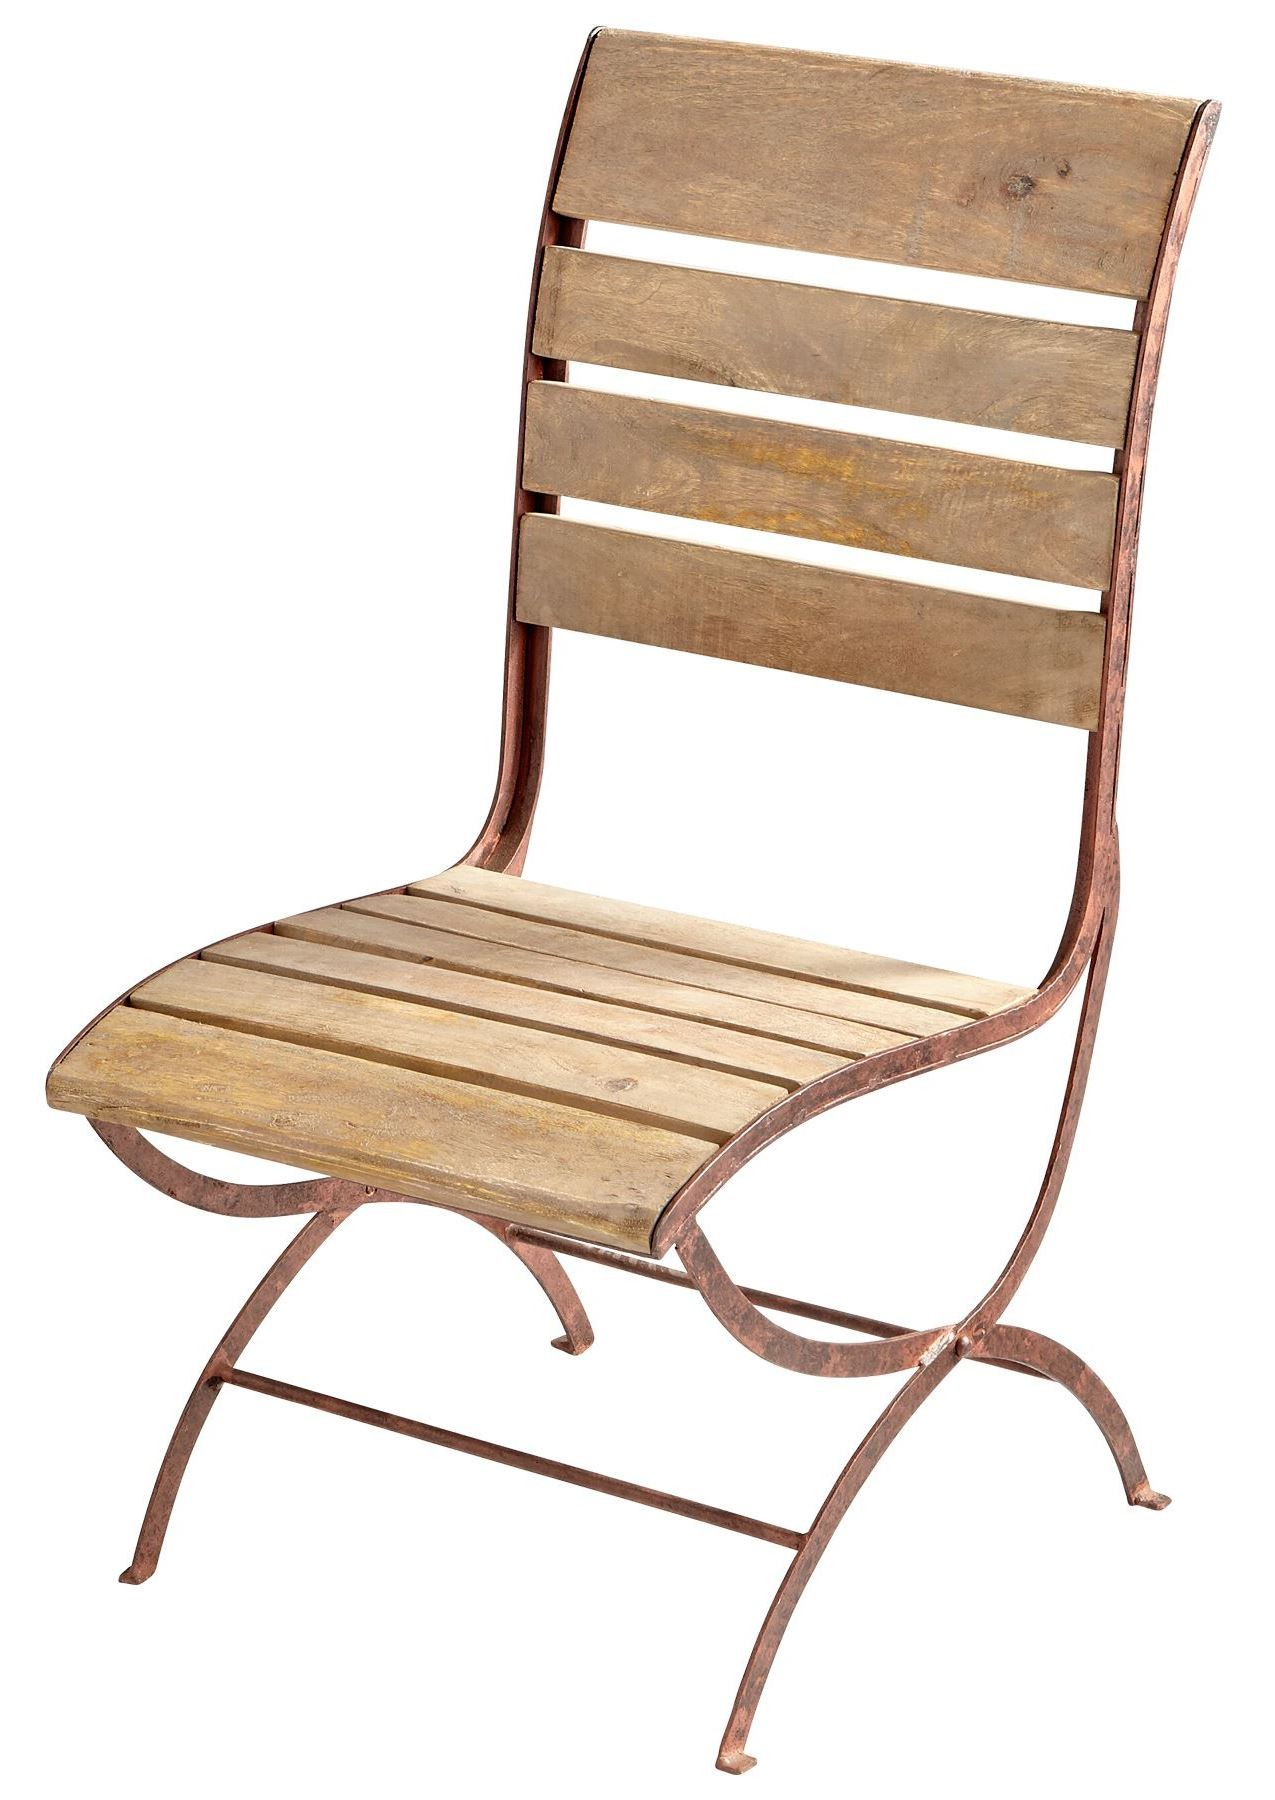 Victorian Chair From Cyan Design 7013 Coleman Furniture